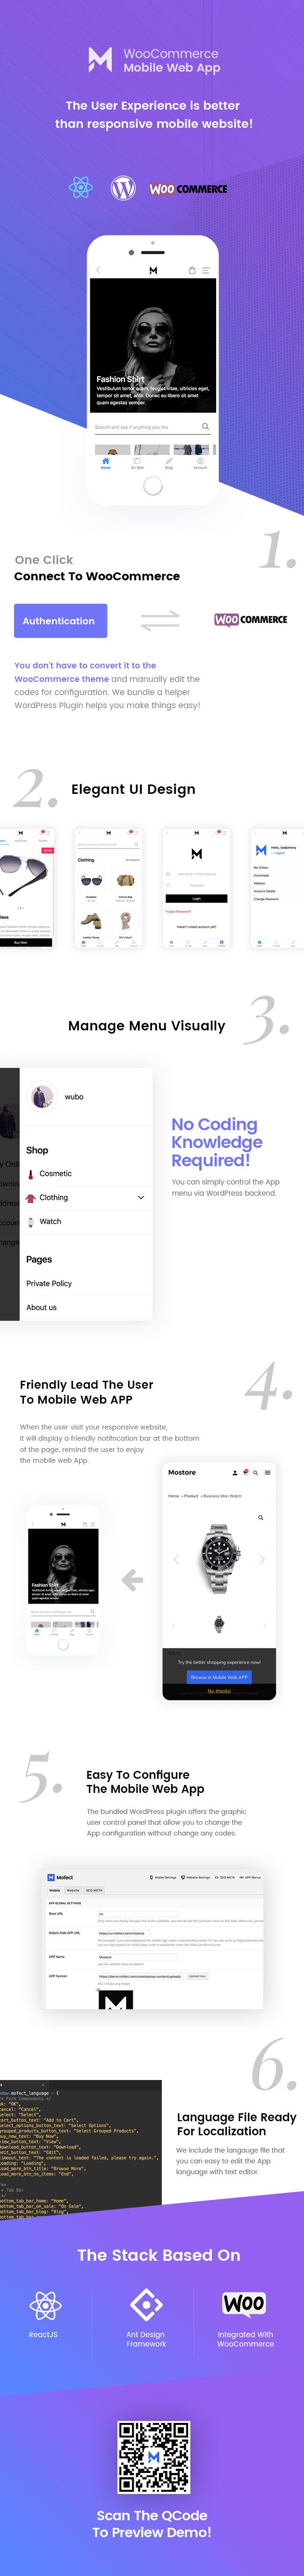 Mostore - React Redux Mobile Web App For WooCommerce Online